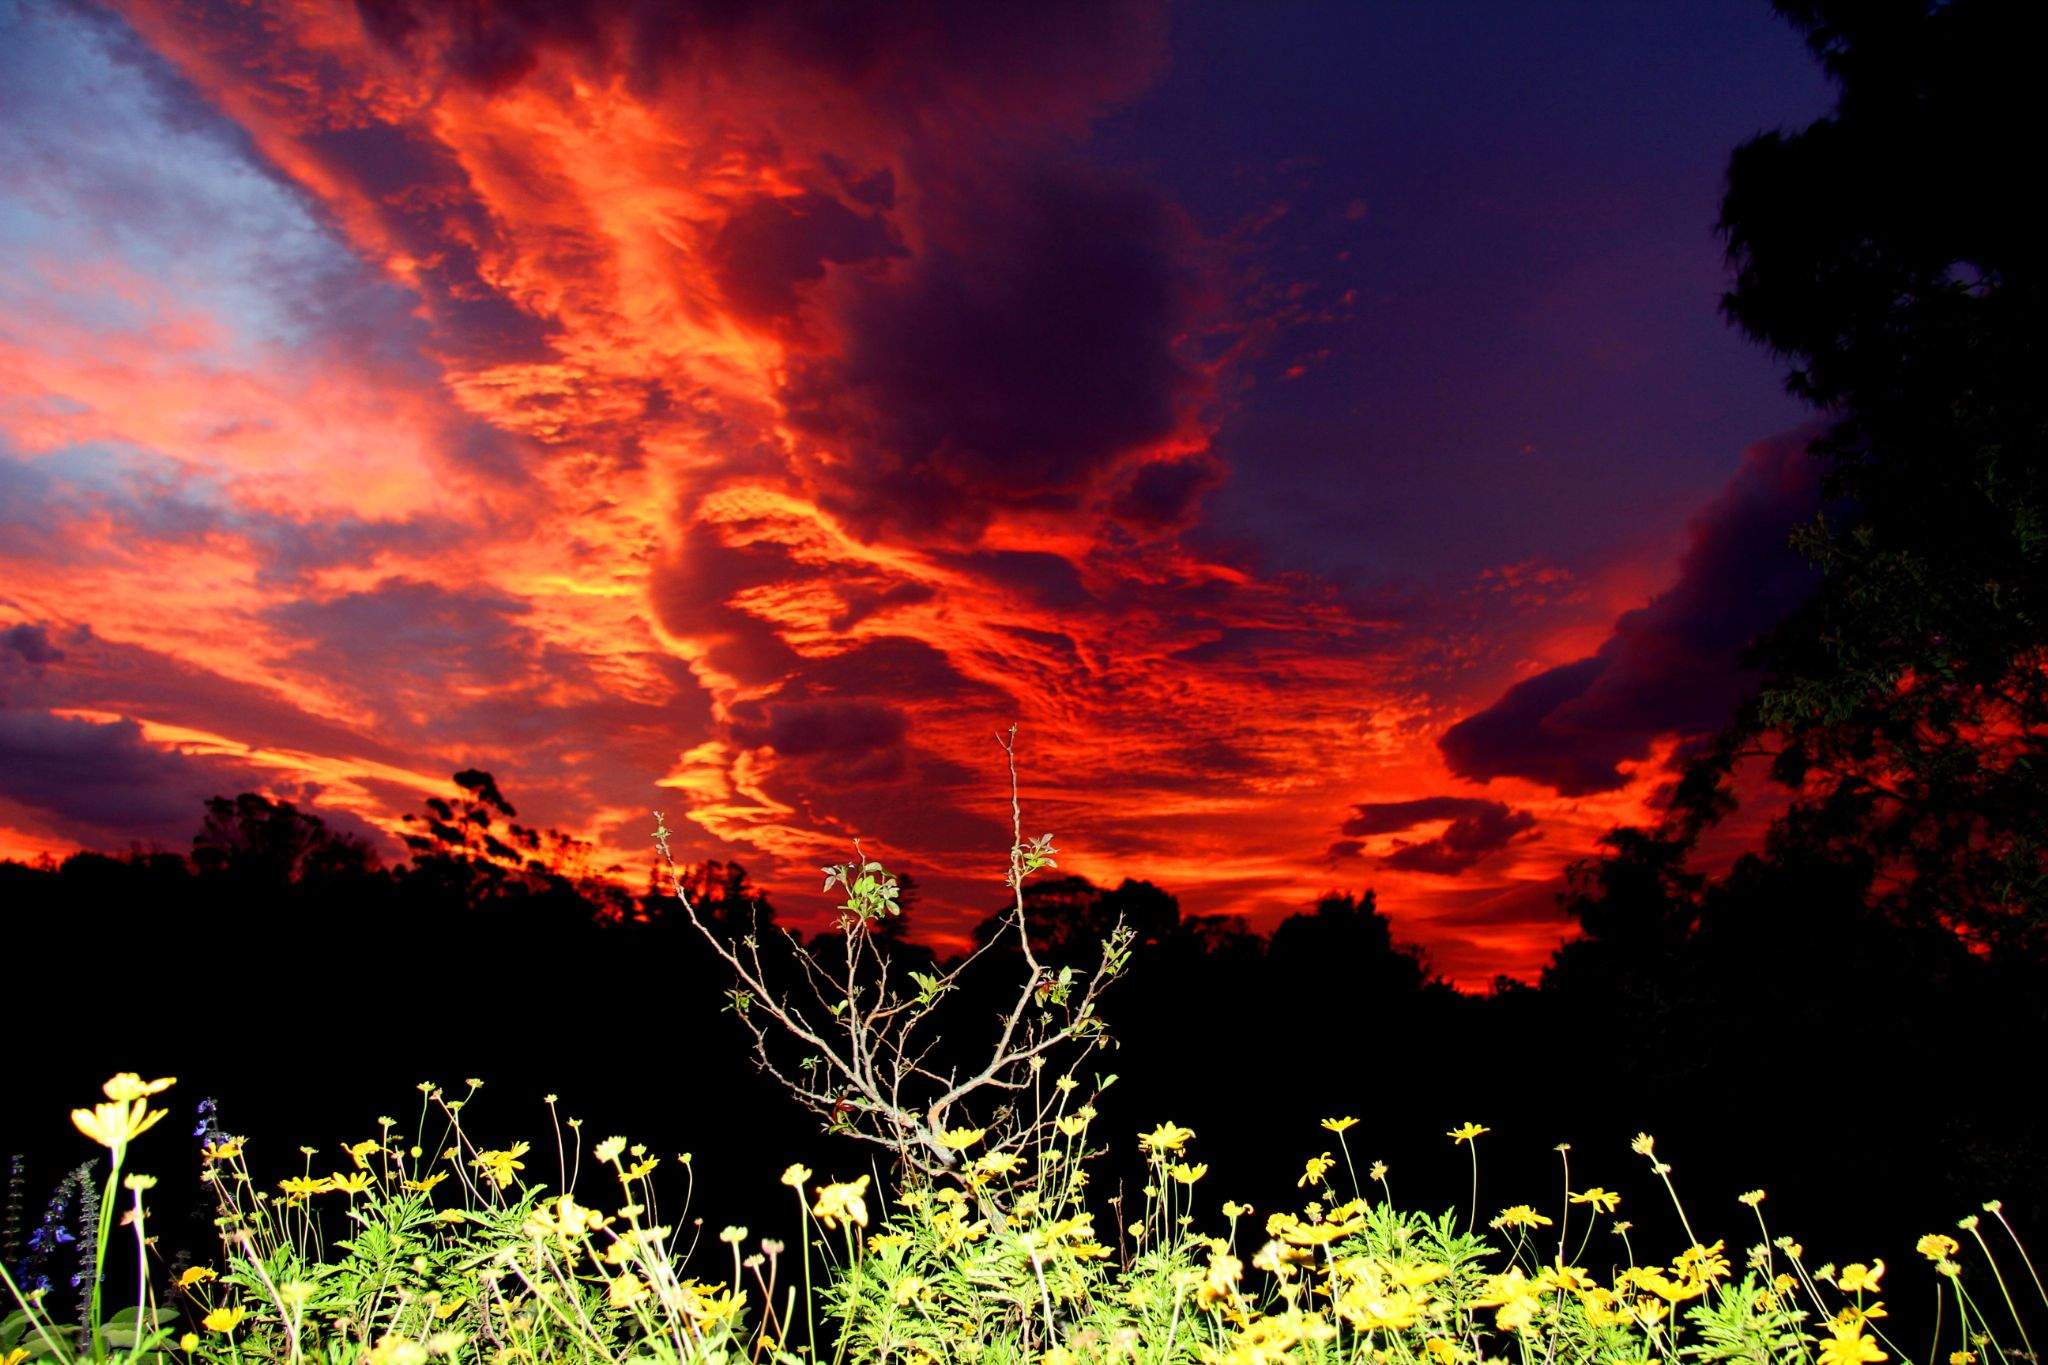 Fire in the Sky by Andrea Paarman